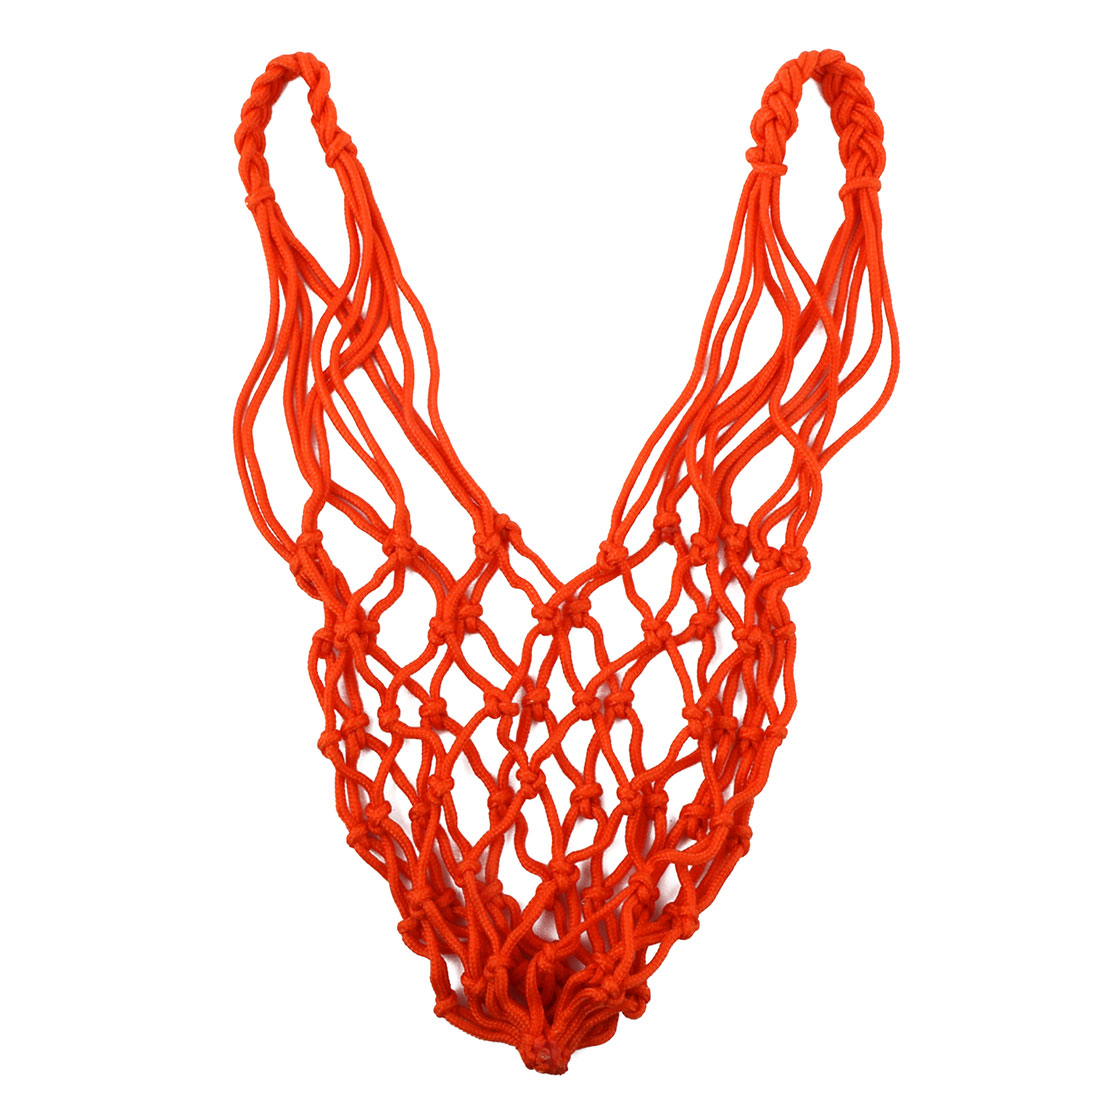 Athletics 12 Loops Braided String Knotted Training Match Basketball Net Orange